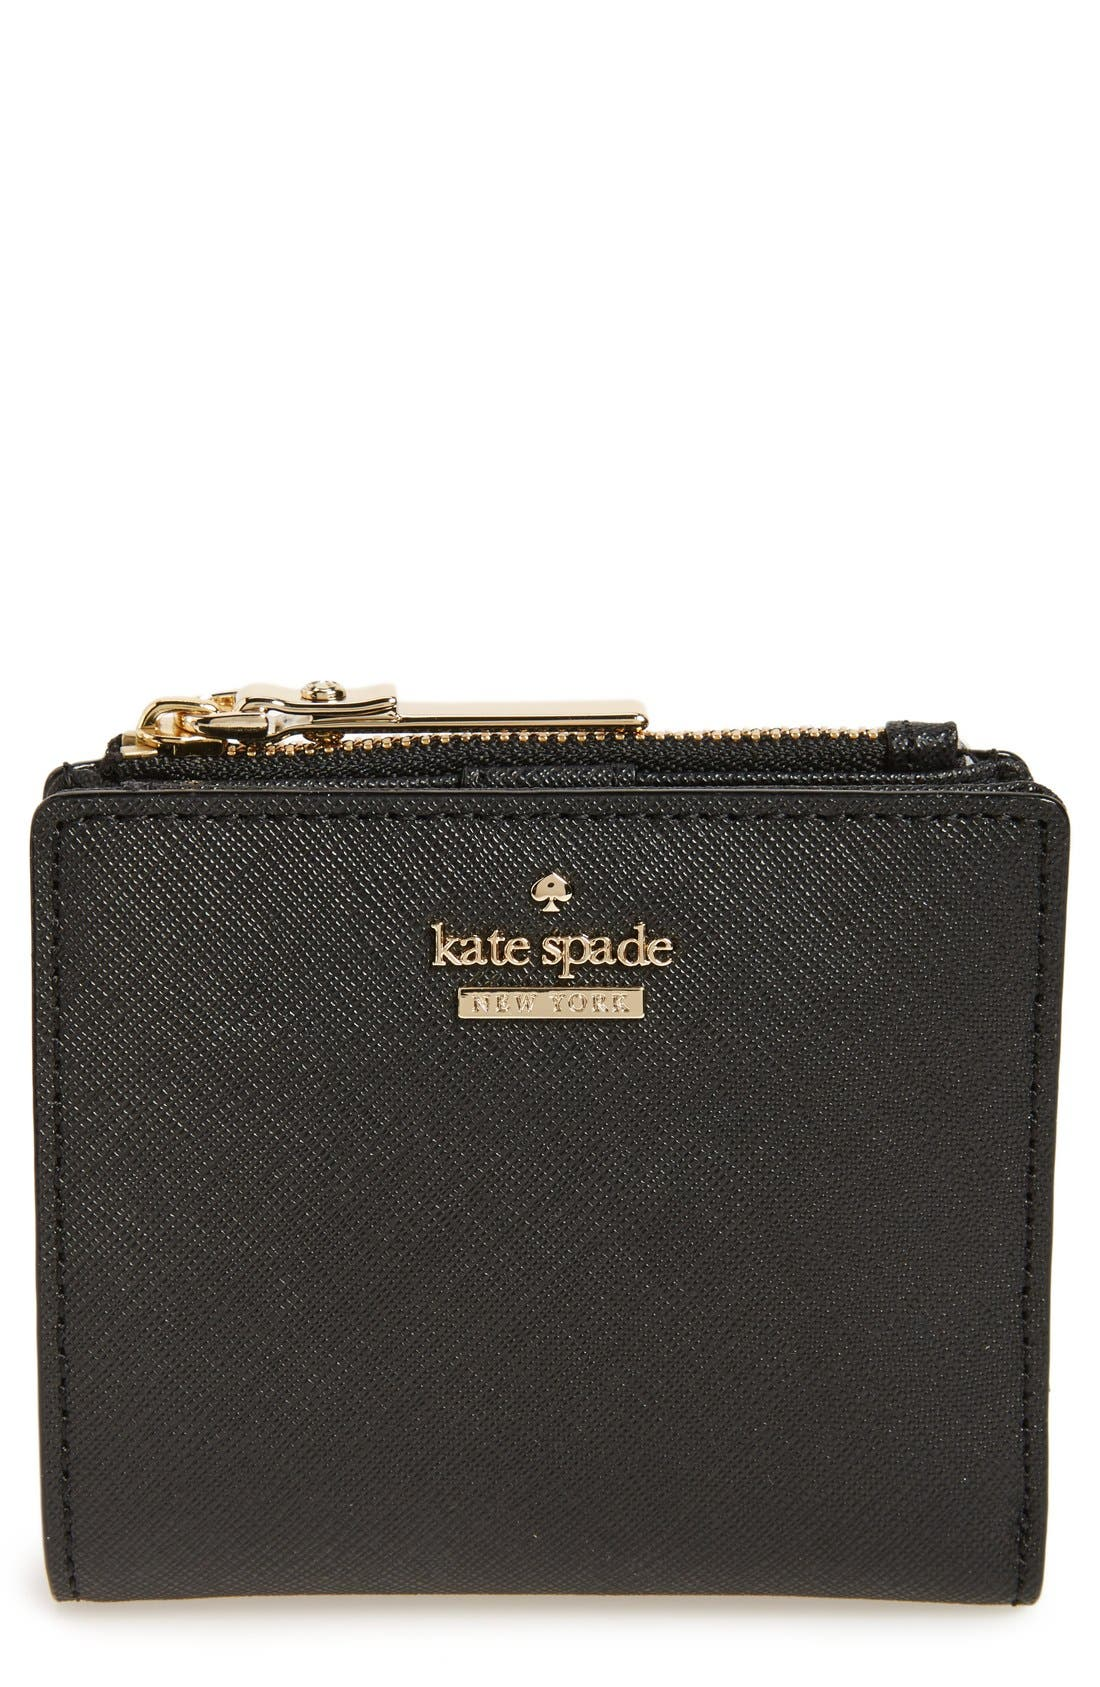 kate spade new york cameron street - adalyn slim leather wallet